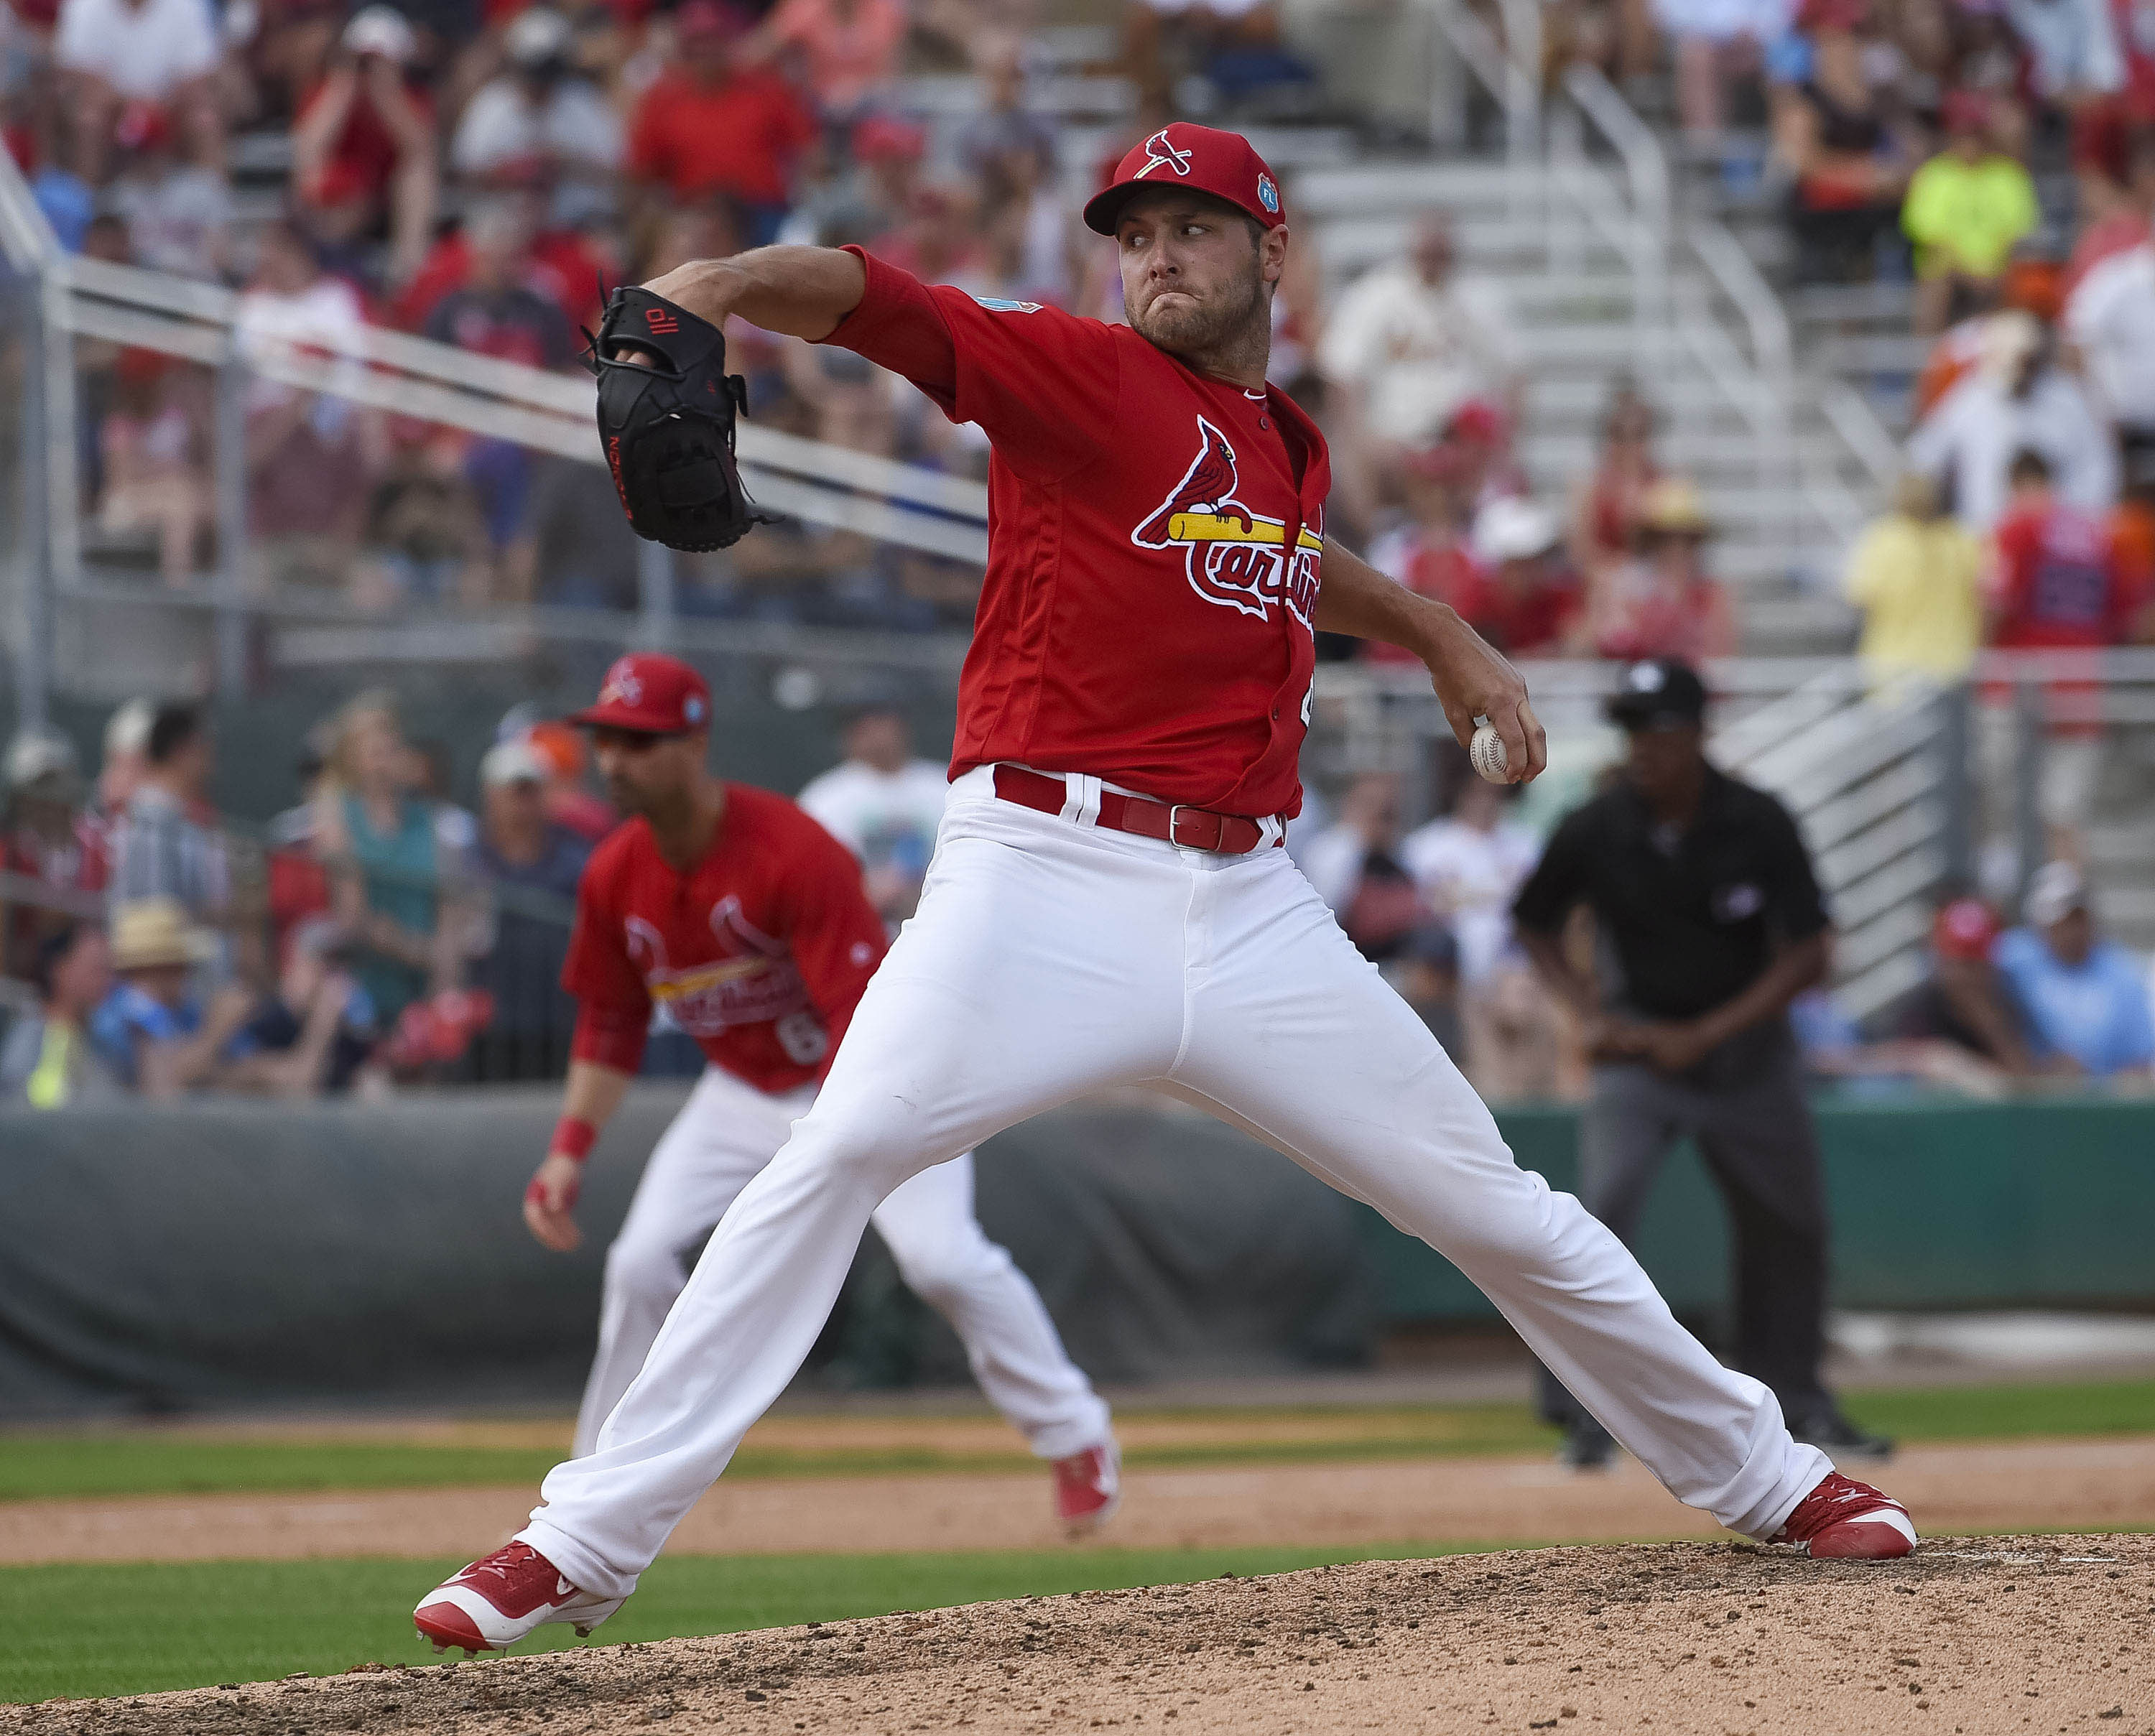 Kevin Siegrist, unheralded draft prospect once upon a time.